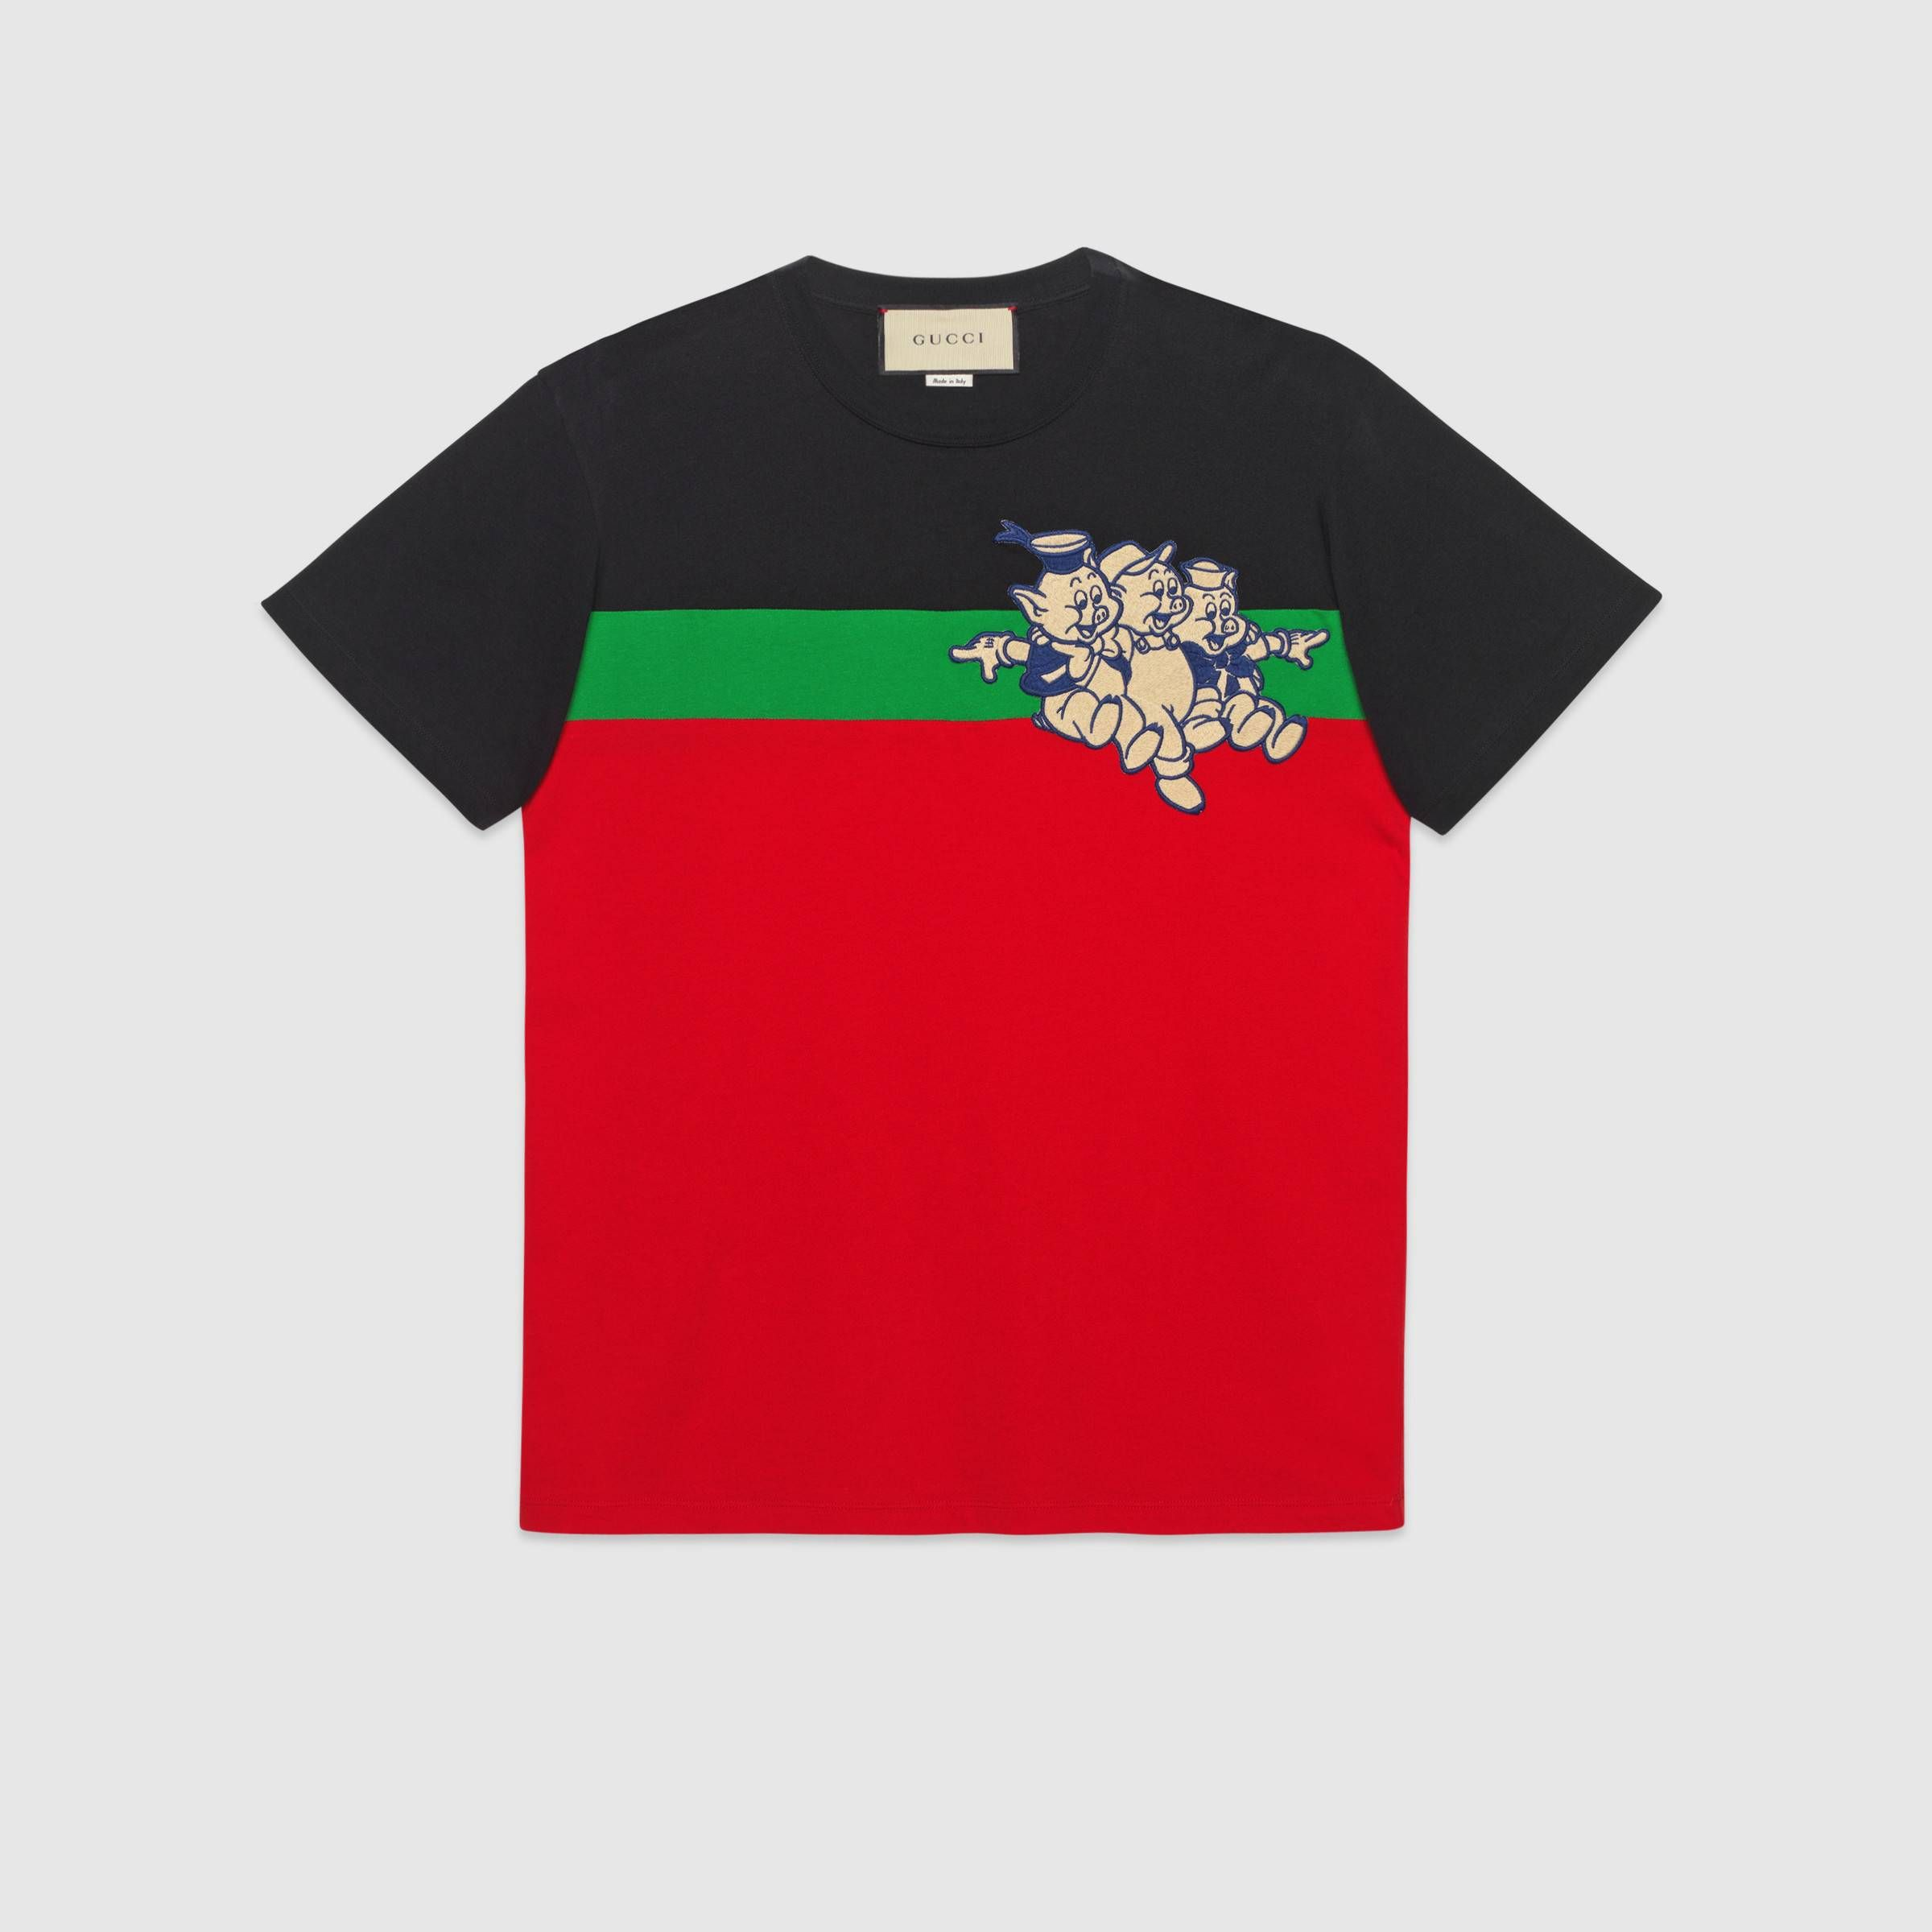 a2503ea4 Men's oversize t-shirt with Three Little Pigs in Red and black cotton  jersey | Gucci Men's T-shirts